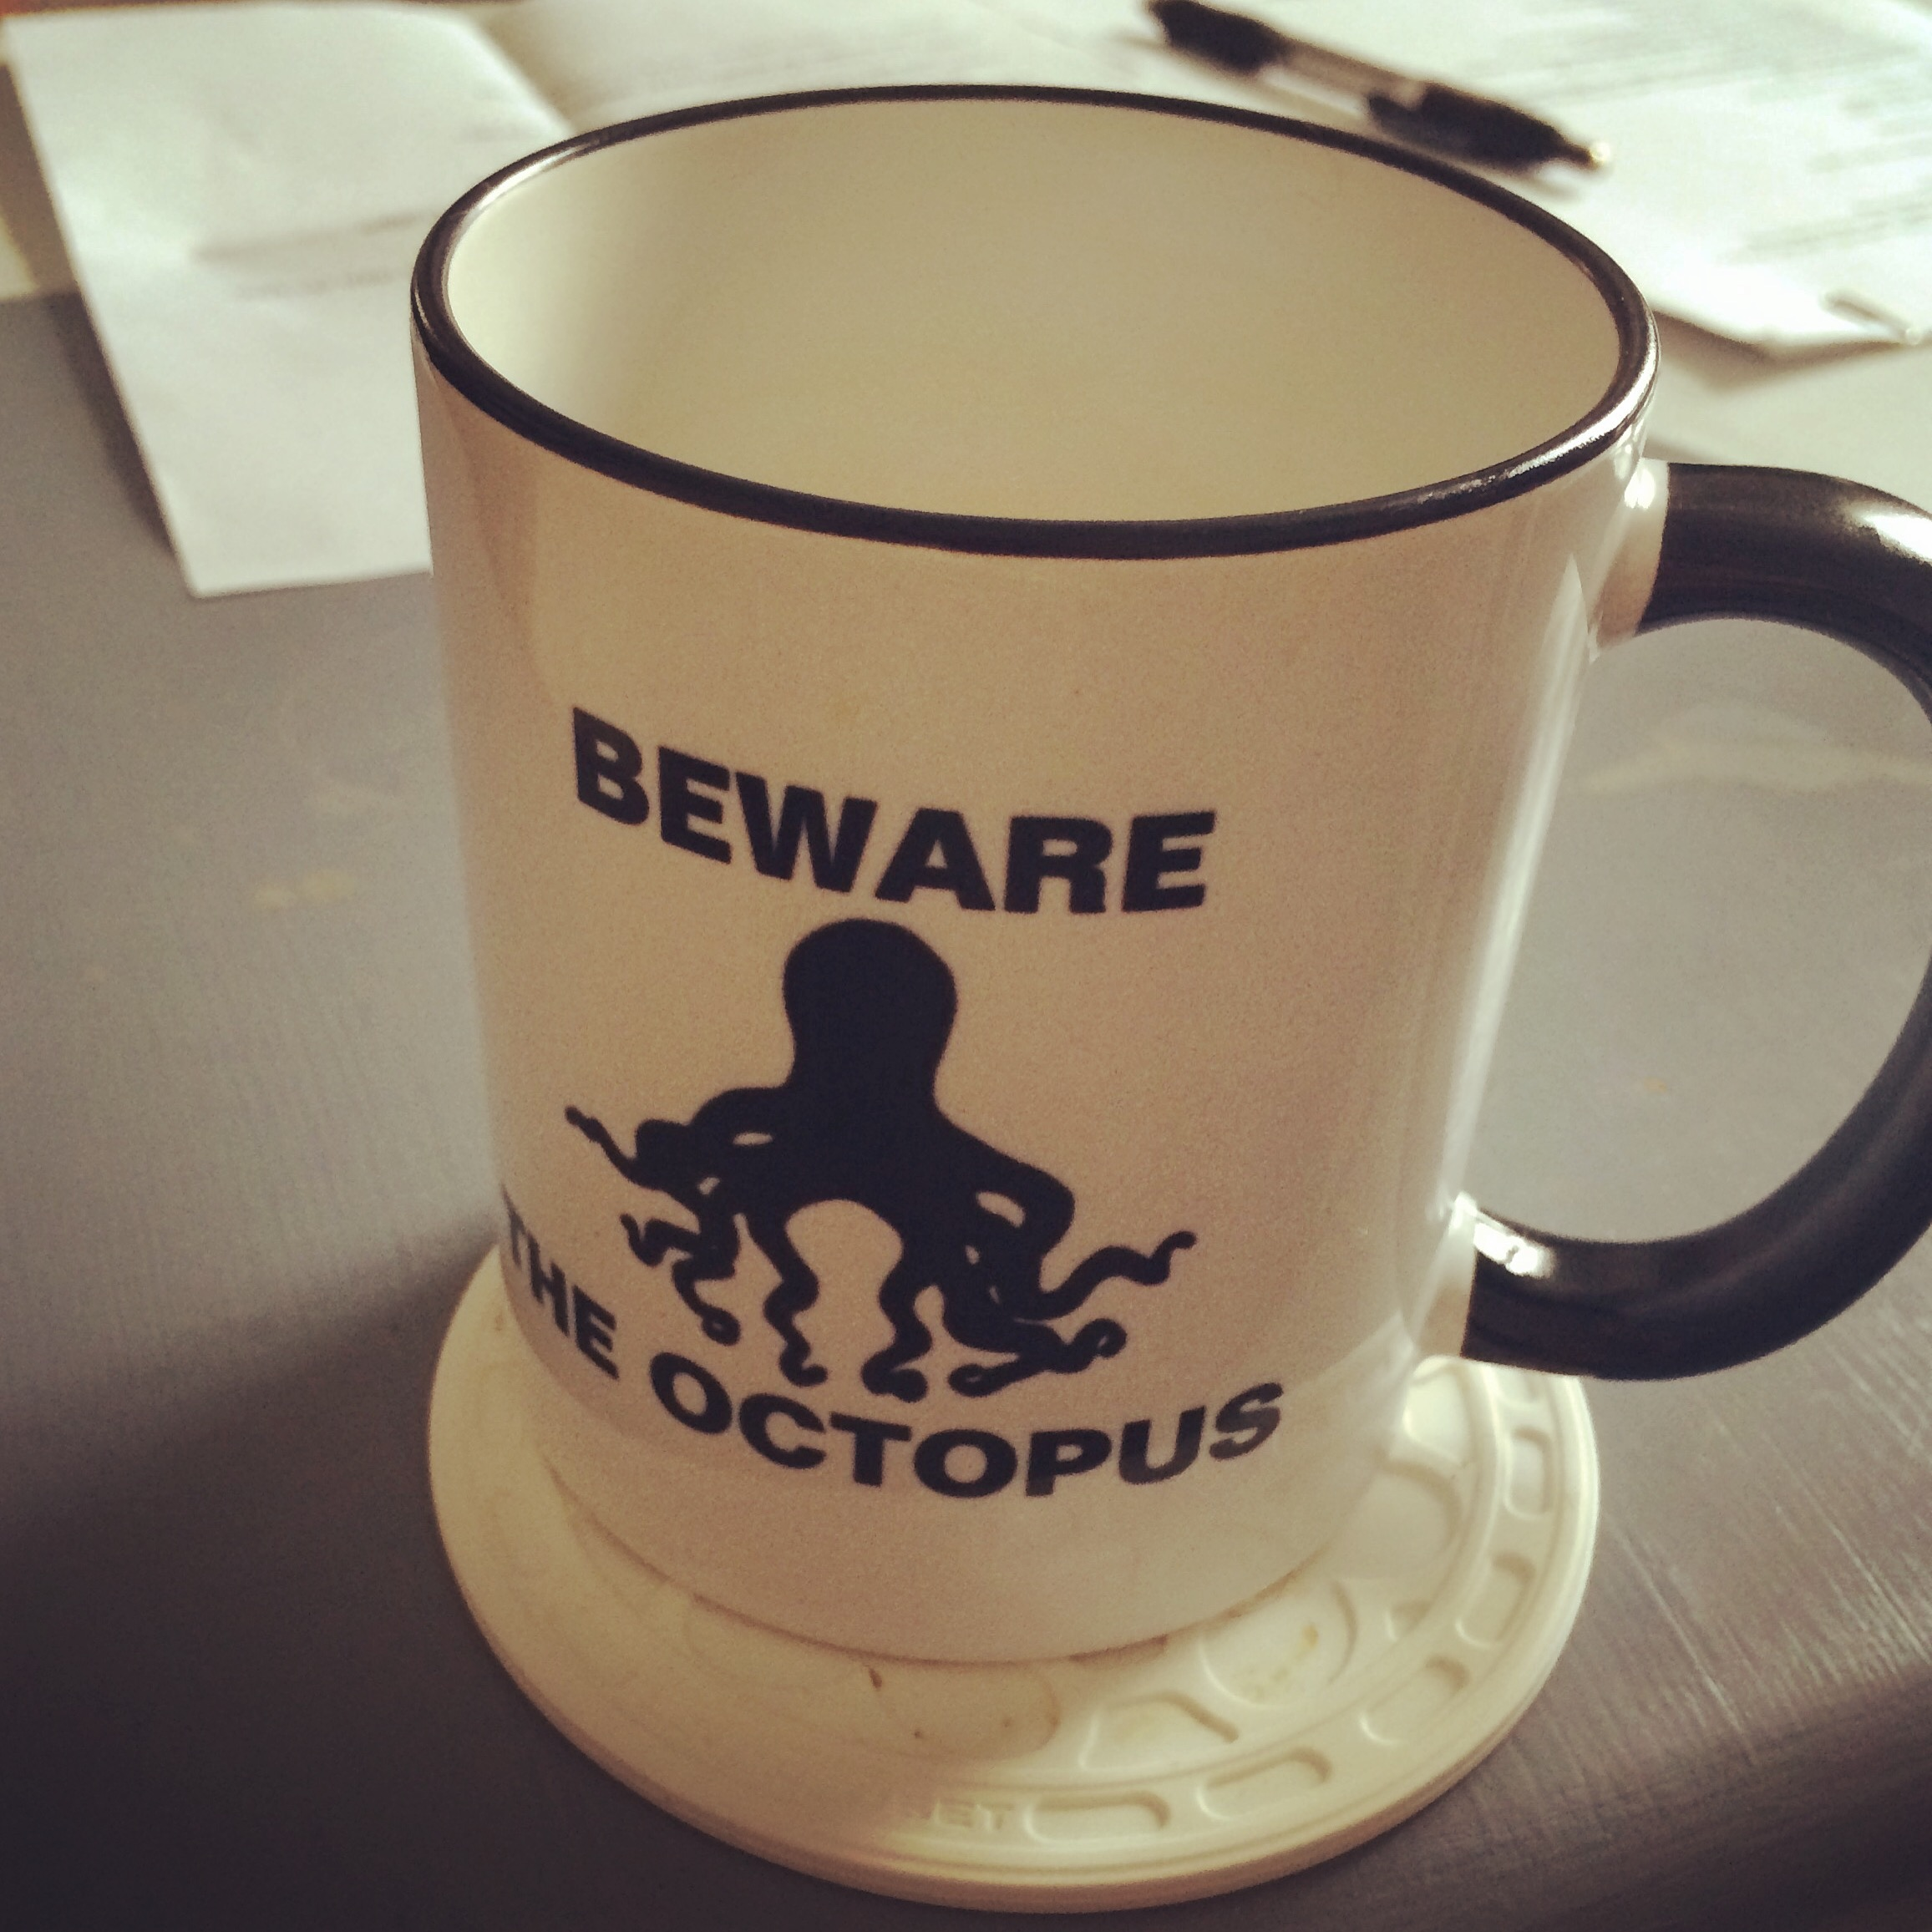 Beware the Octopus Mug merch gail carriger